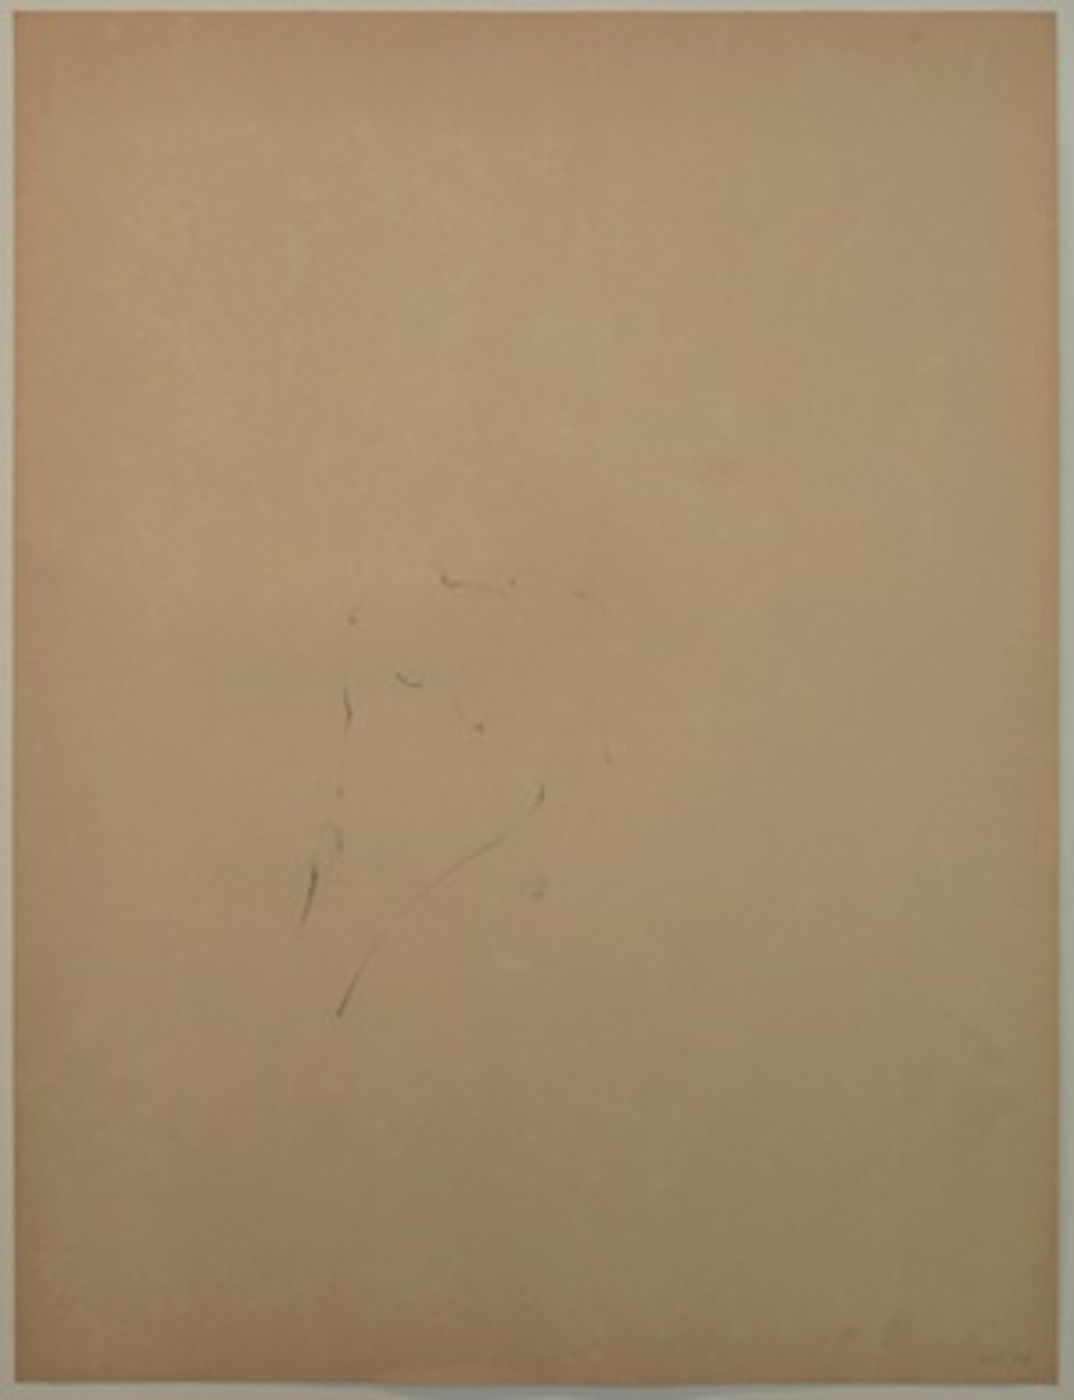 Lala Rukh  Untitled (13) 1983 – 1985 Conté on paper 74 x 56.5 cm